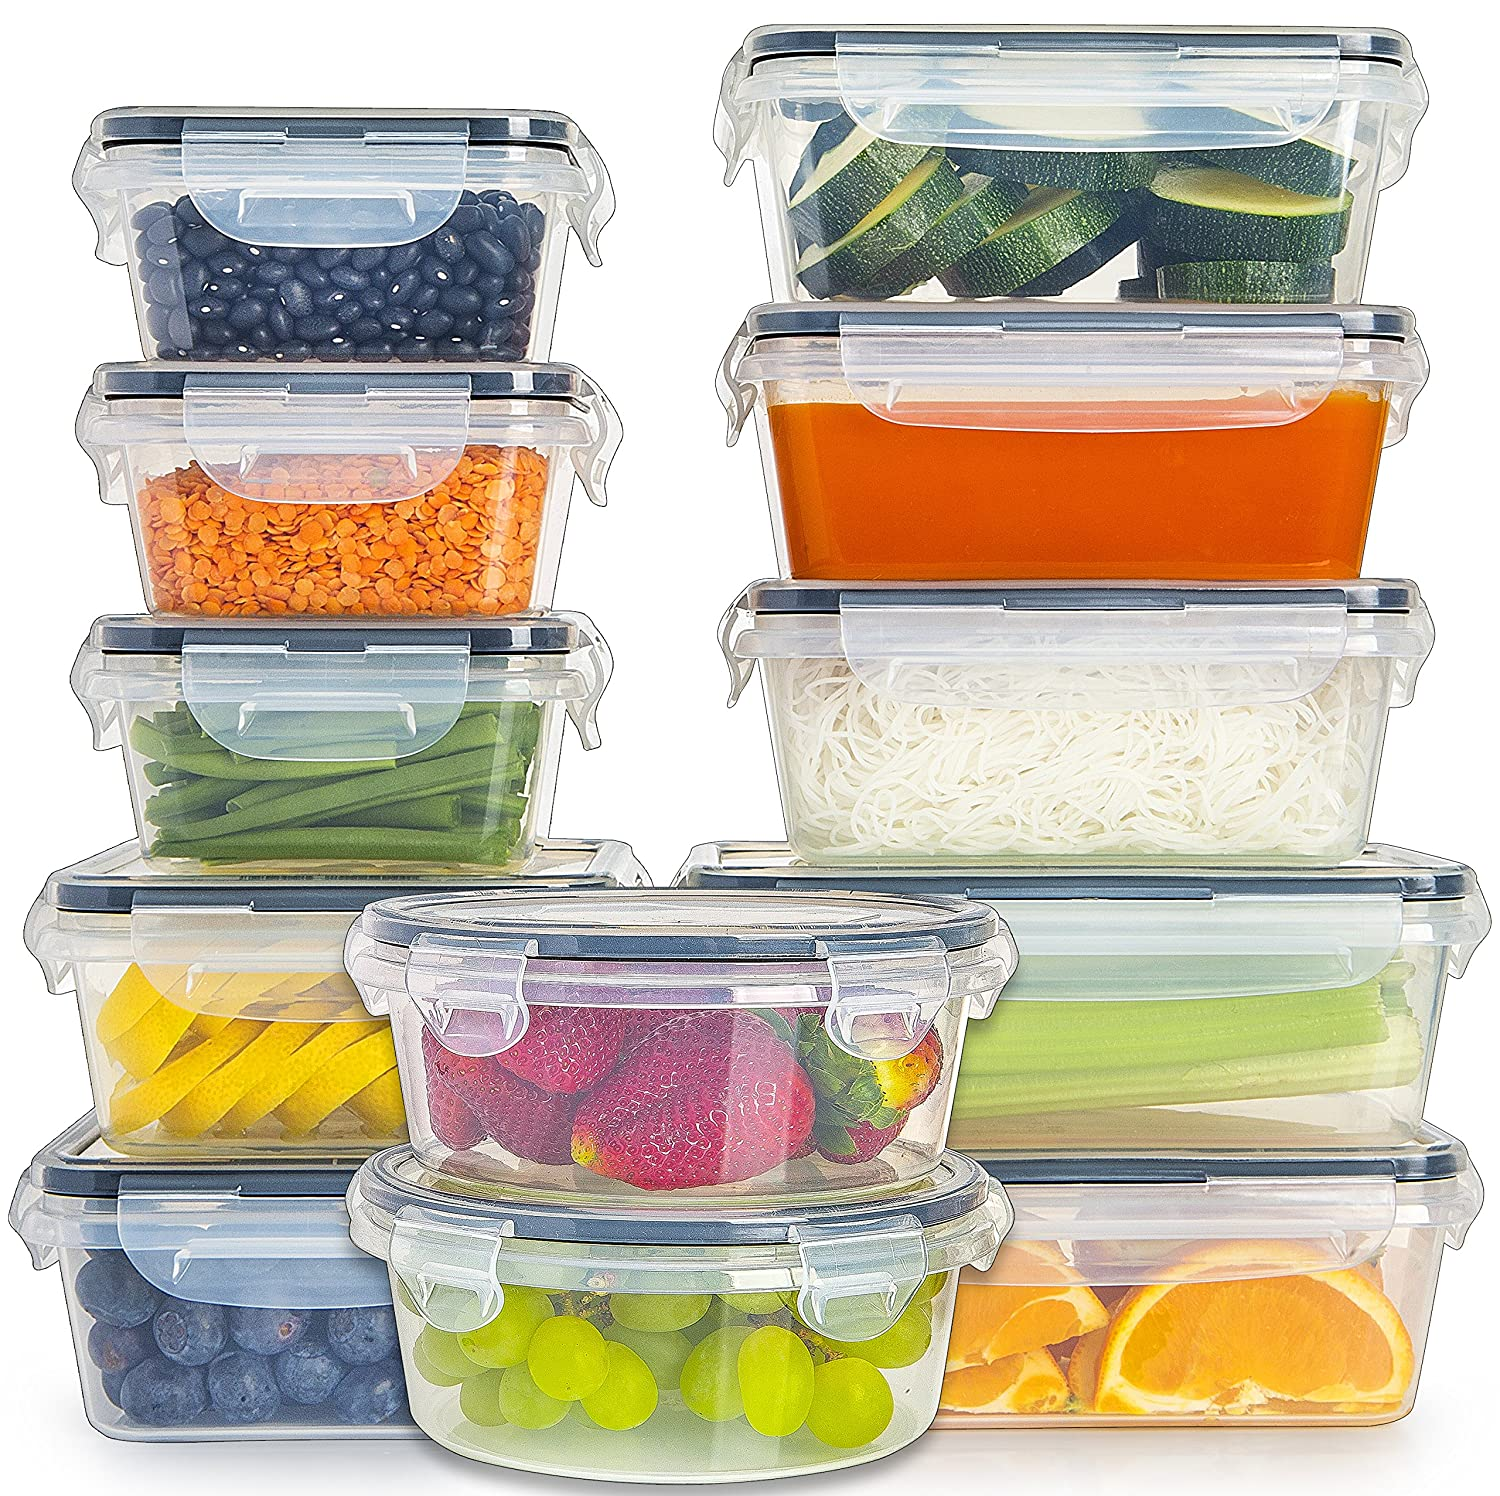 12-Pack] Food Storage Containers with Lids - Plastic Food Containers with lids - Plastic Containers with lids - Airtight Leak Proof Easy Snap